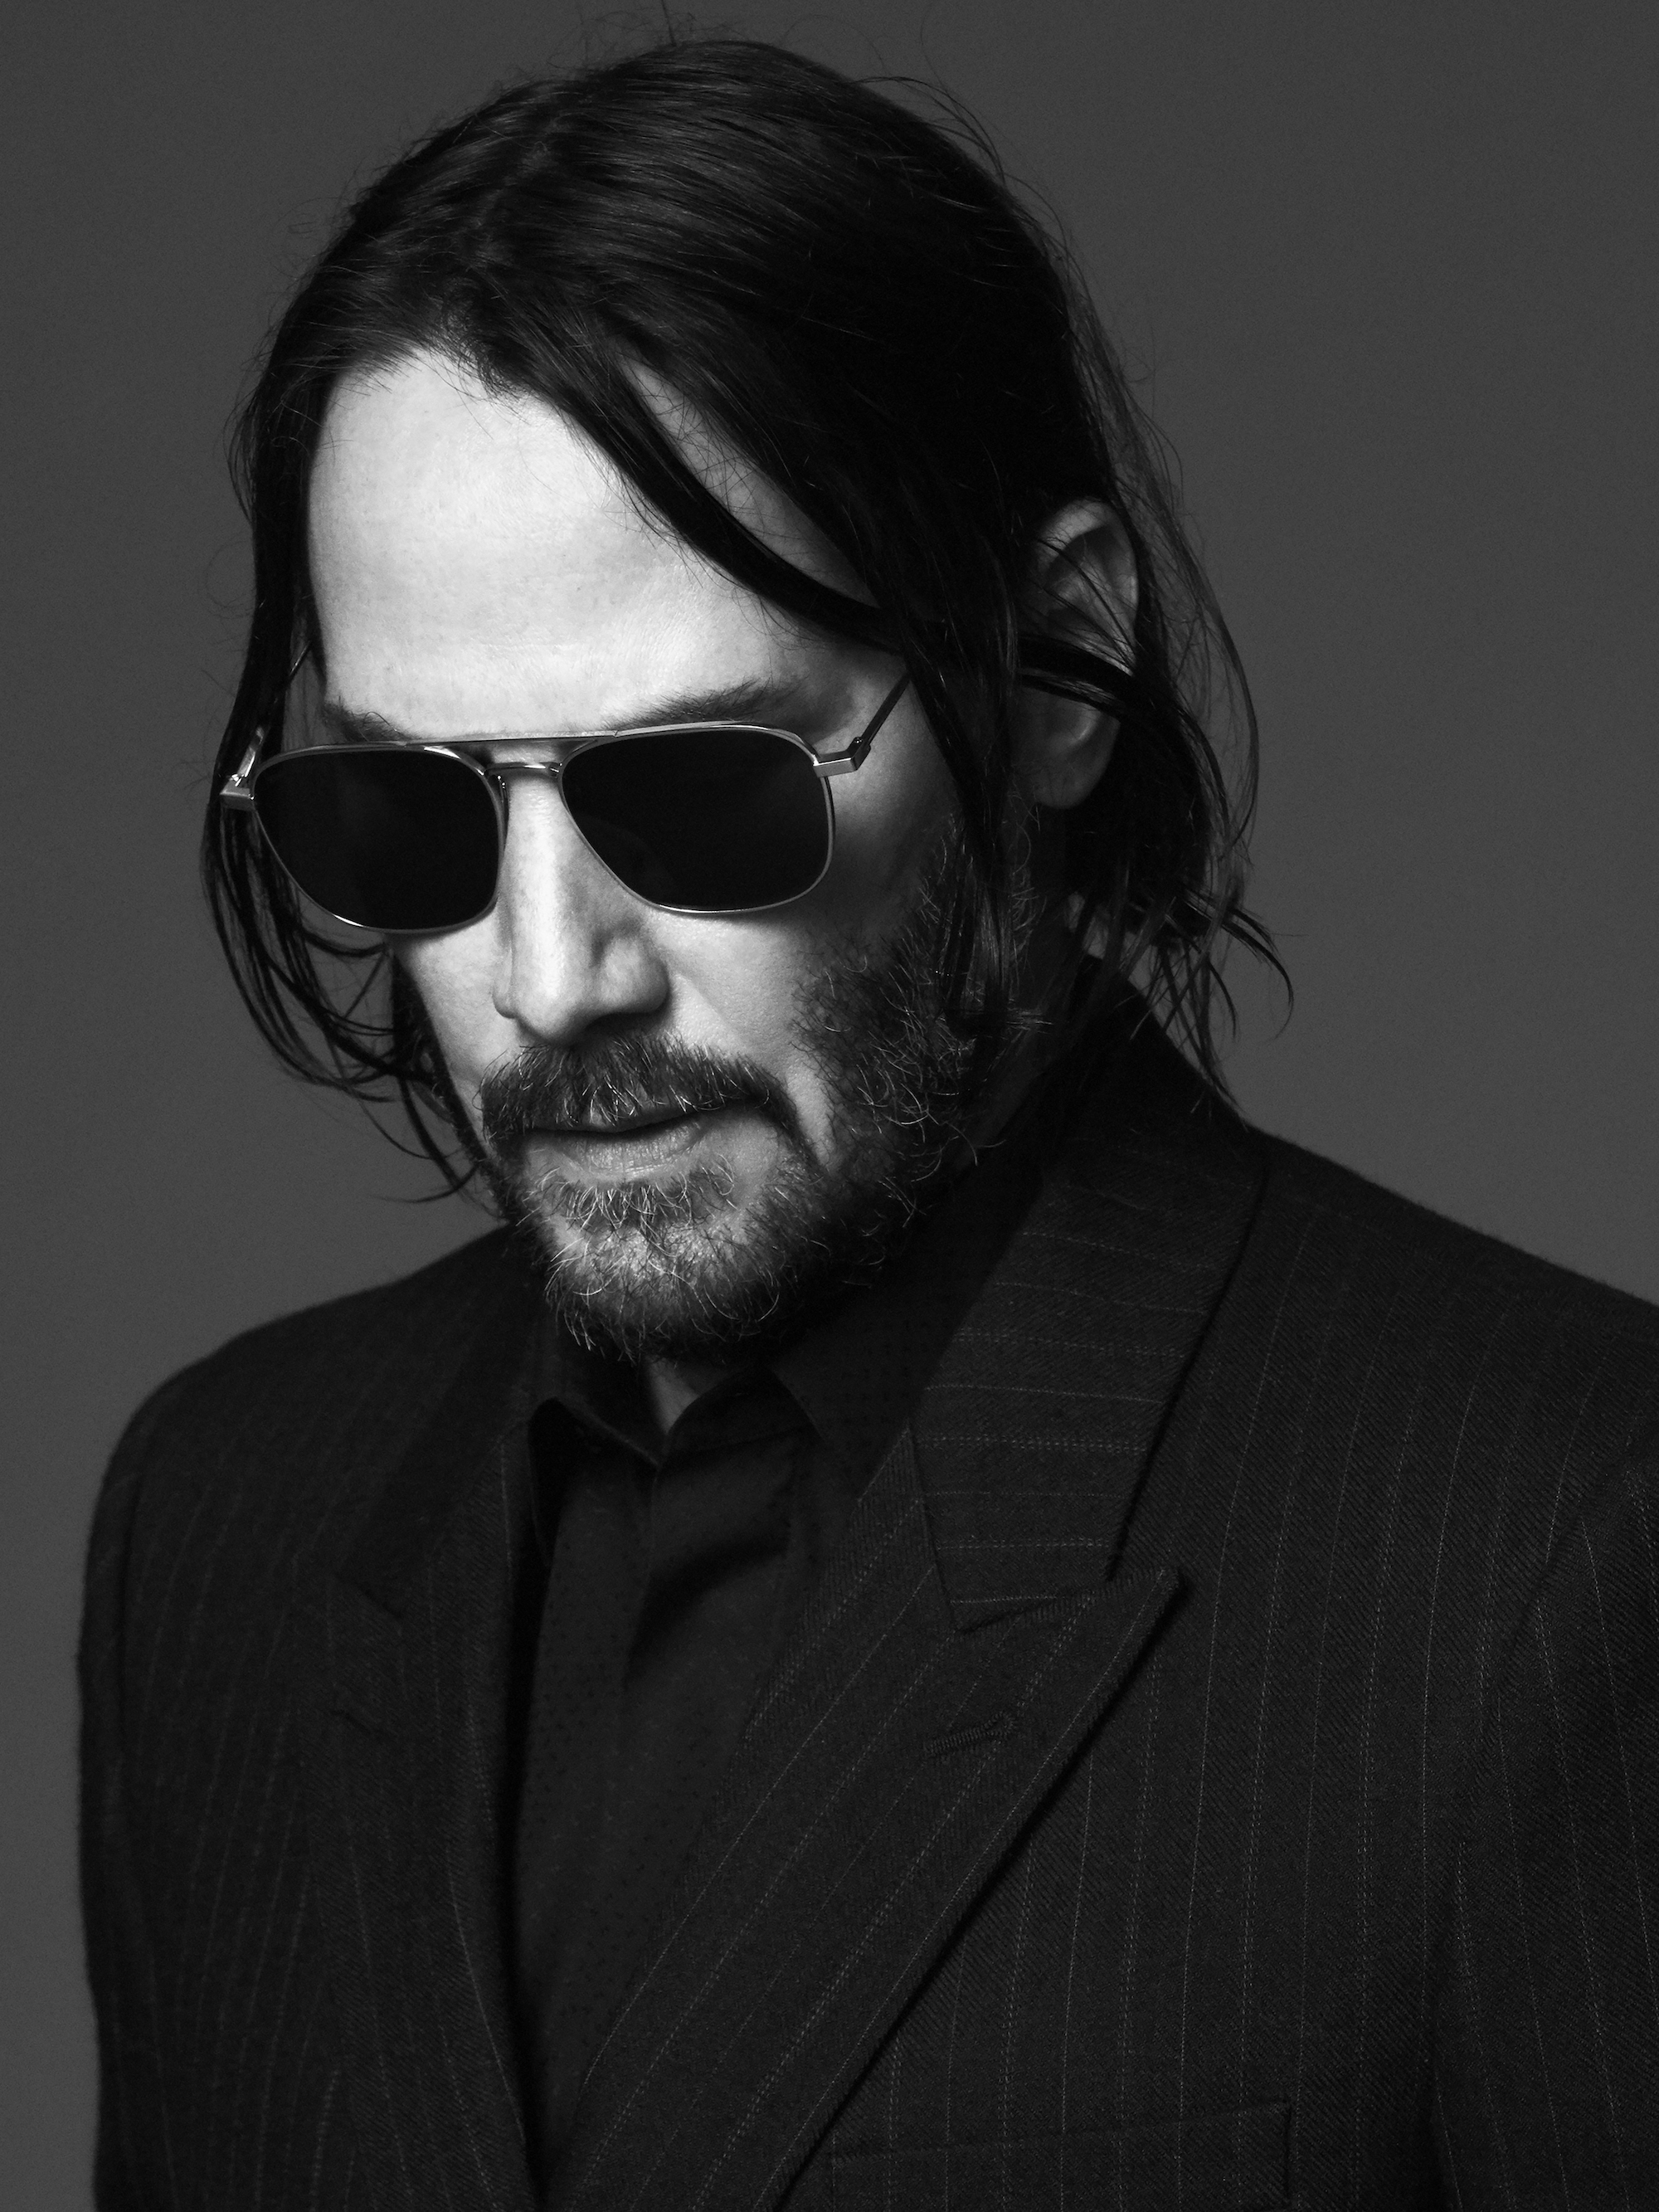 Keanu Reeves is the face of Saint Laurent Fall 2019 menswear campaign in a pinstripe suit